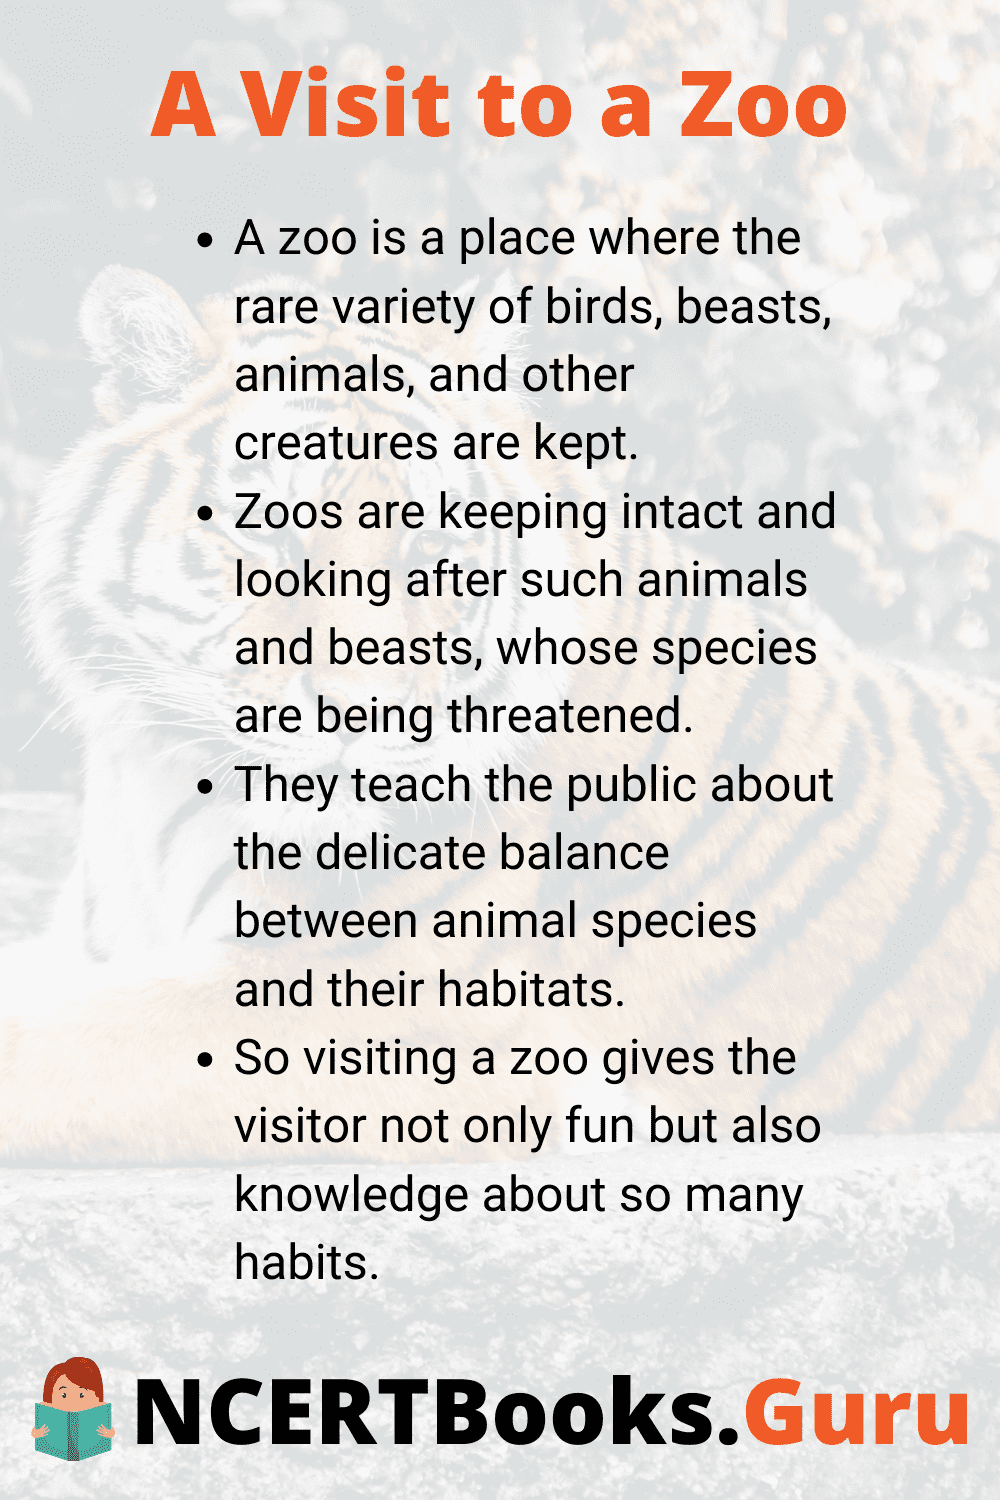 Essay on a Visit to a Zoo